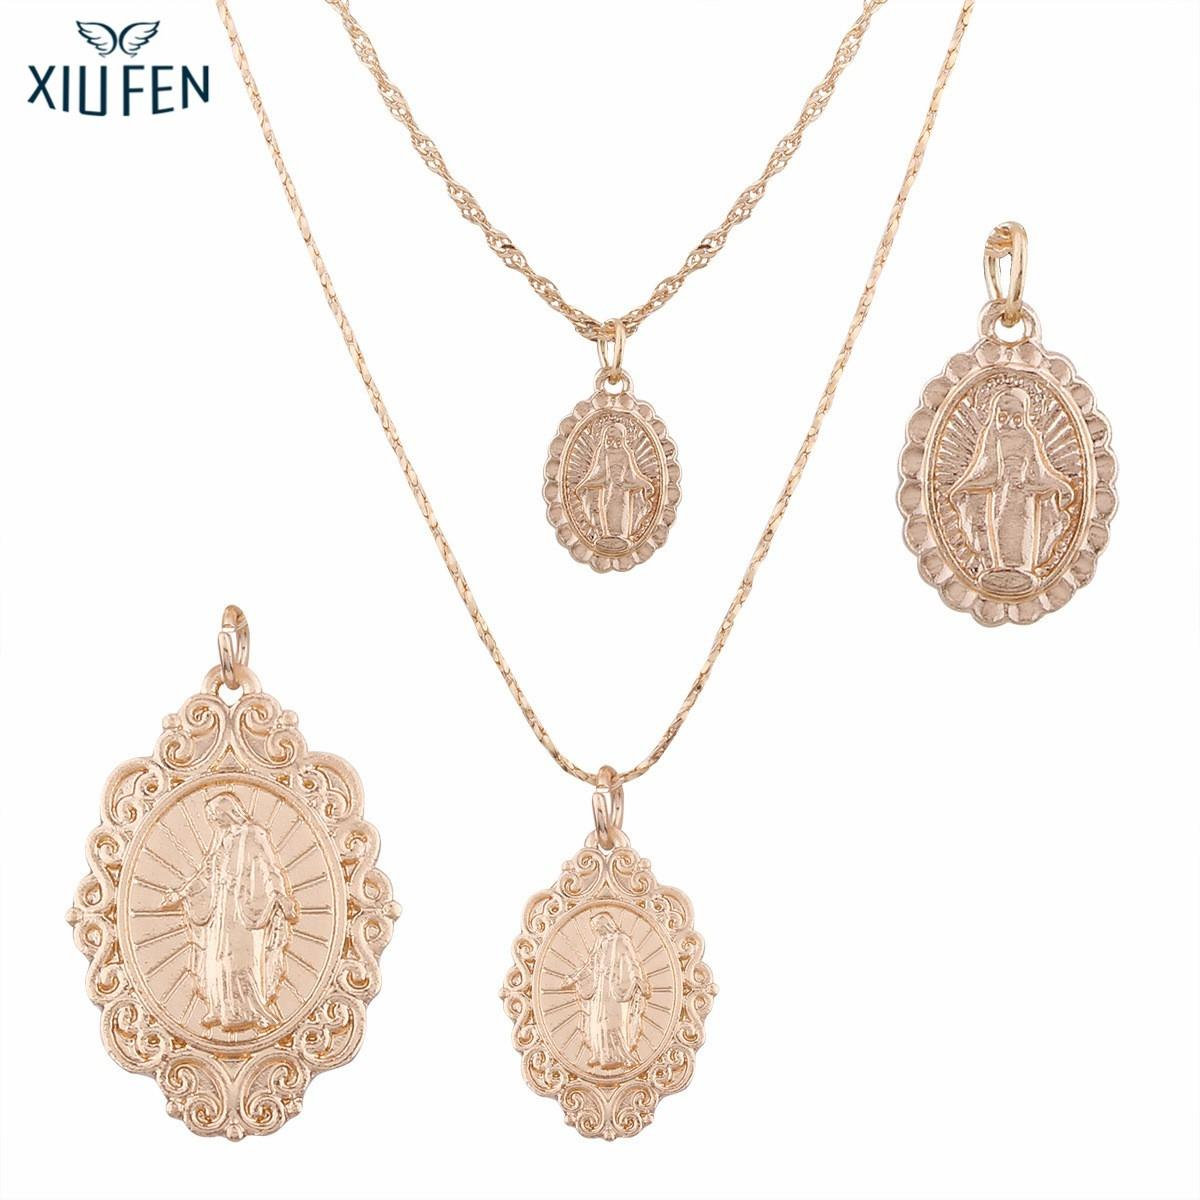 XIUFEN Special Necklace 2PCS Stylish Virgin Mary Necklace Pendent Ornament Festival Birthday Gift